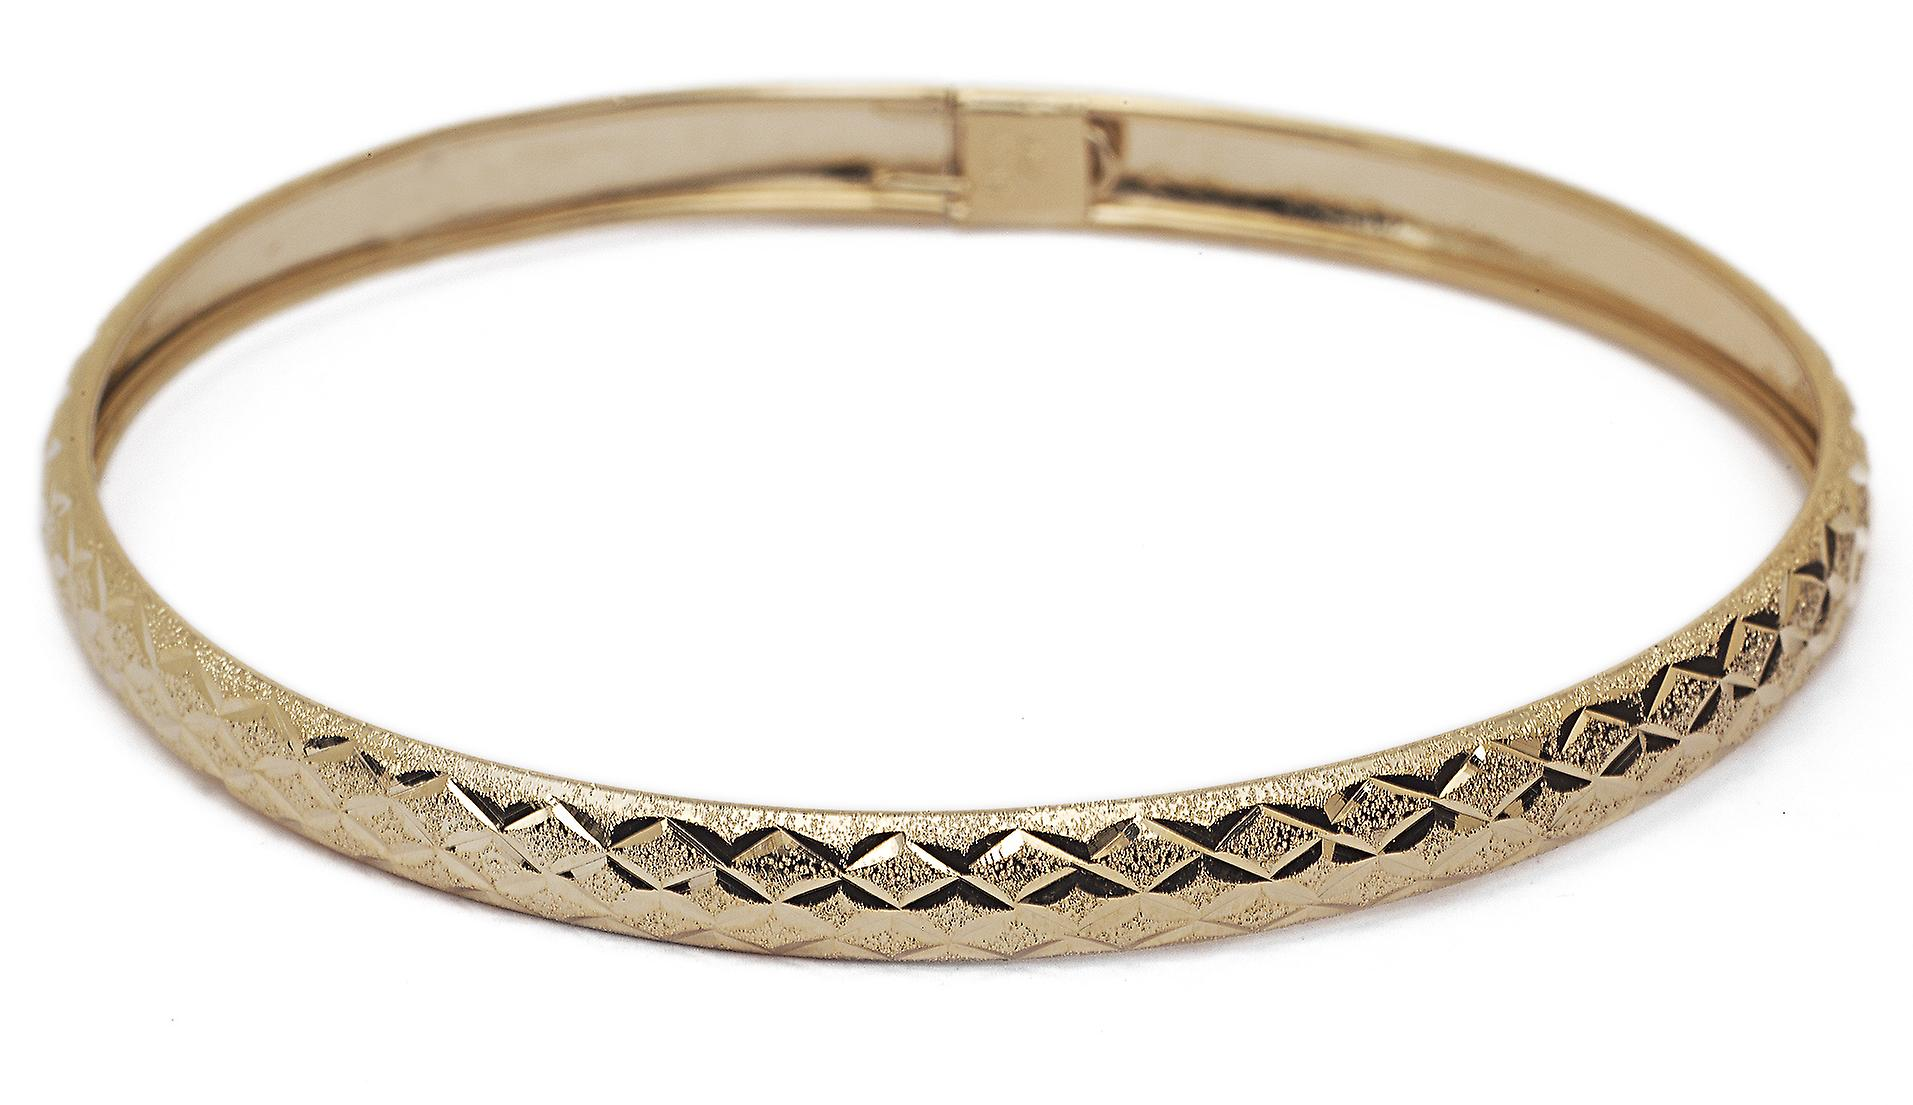 gold bracelet charming diamond with cut karat beautifully this is pin crafted